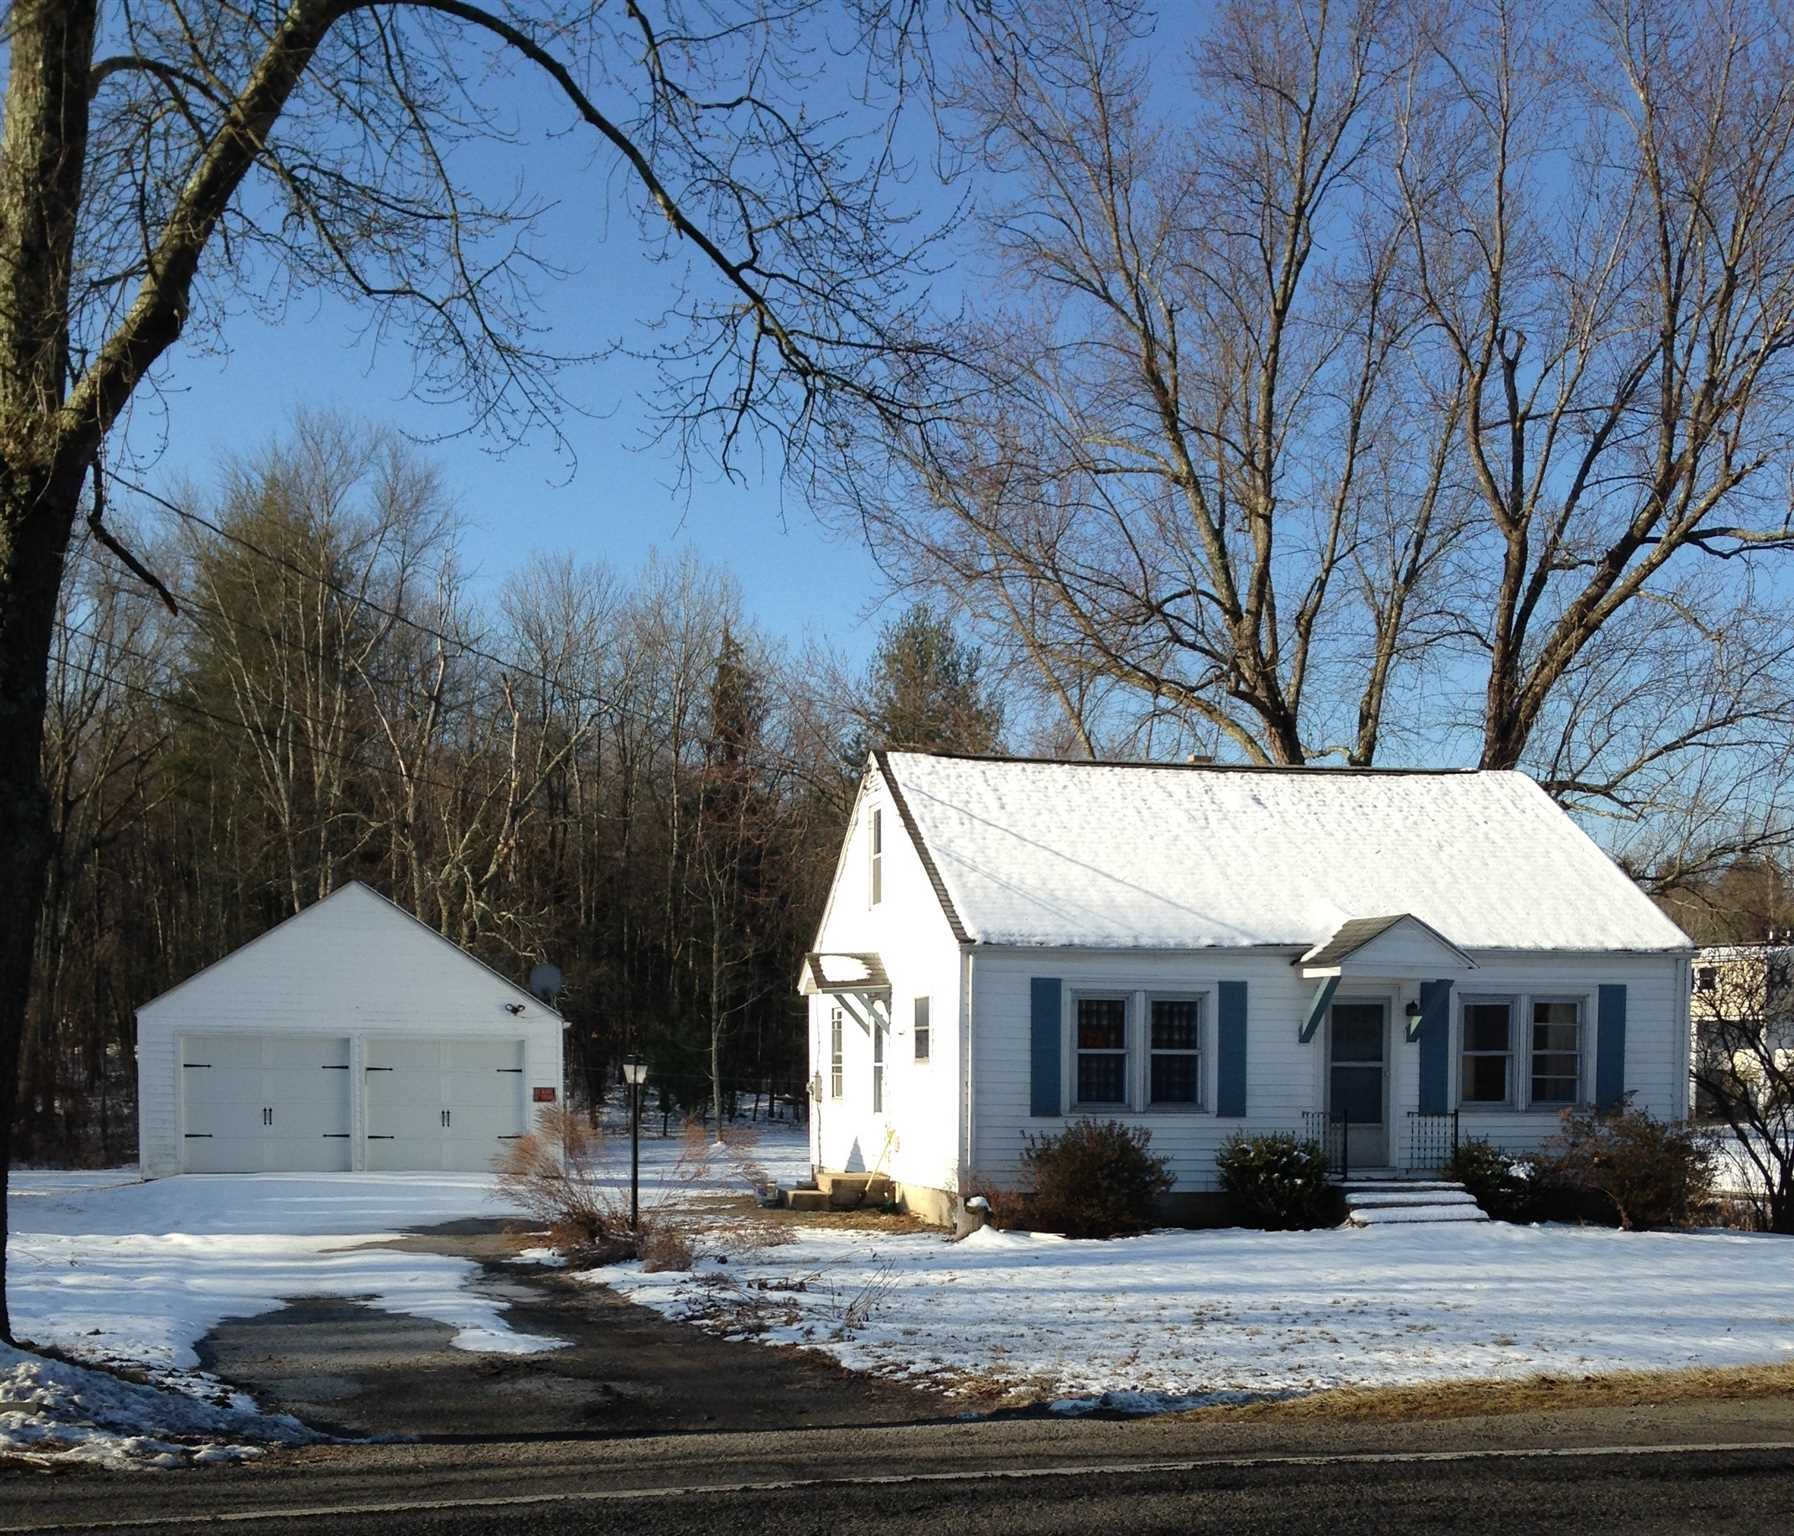 Single Family Home for Sale at 98 CRUM ELBOW ROAD 98 CRUM ELBOW ROAD Hyde Park, New York 12538 United States